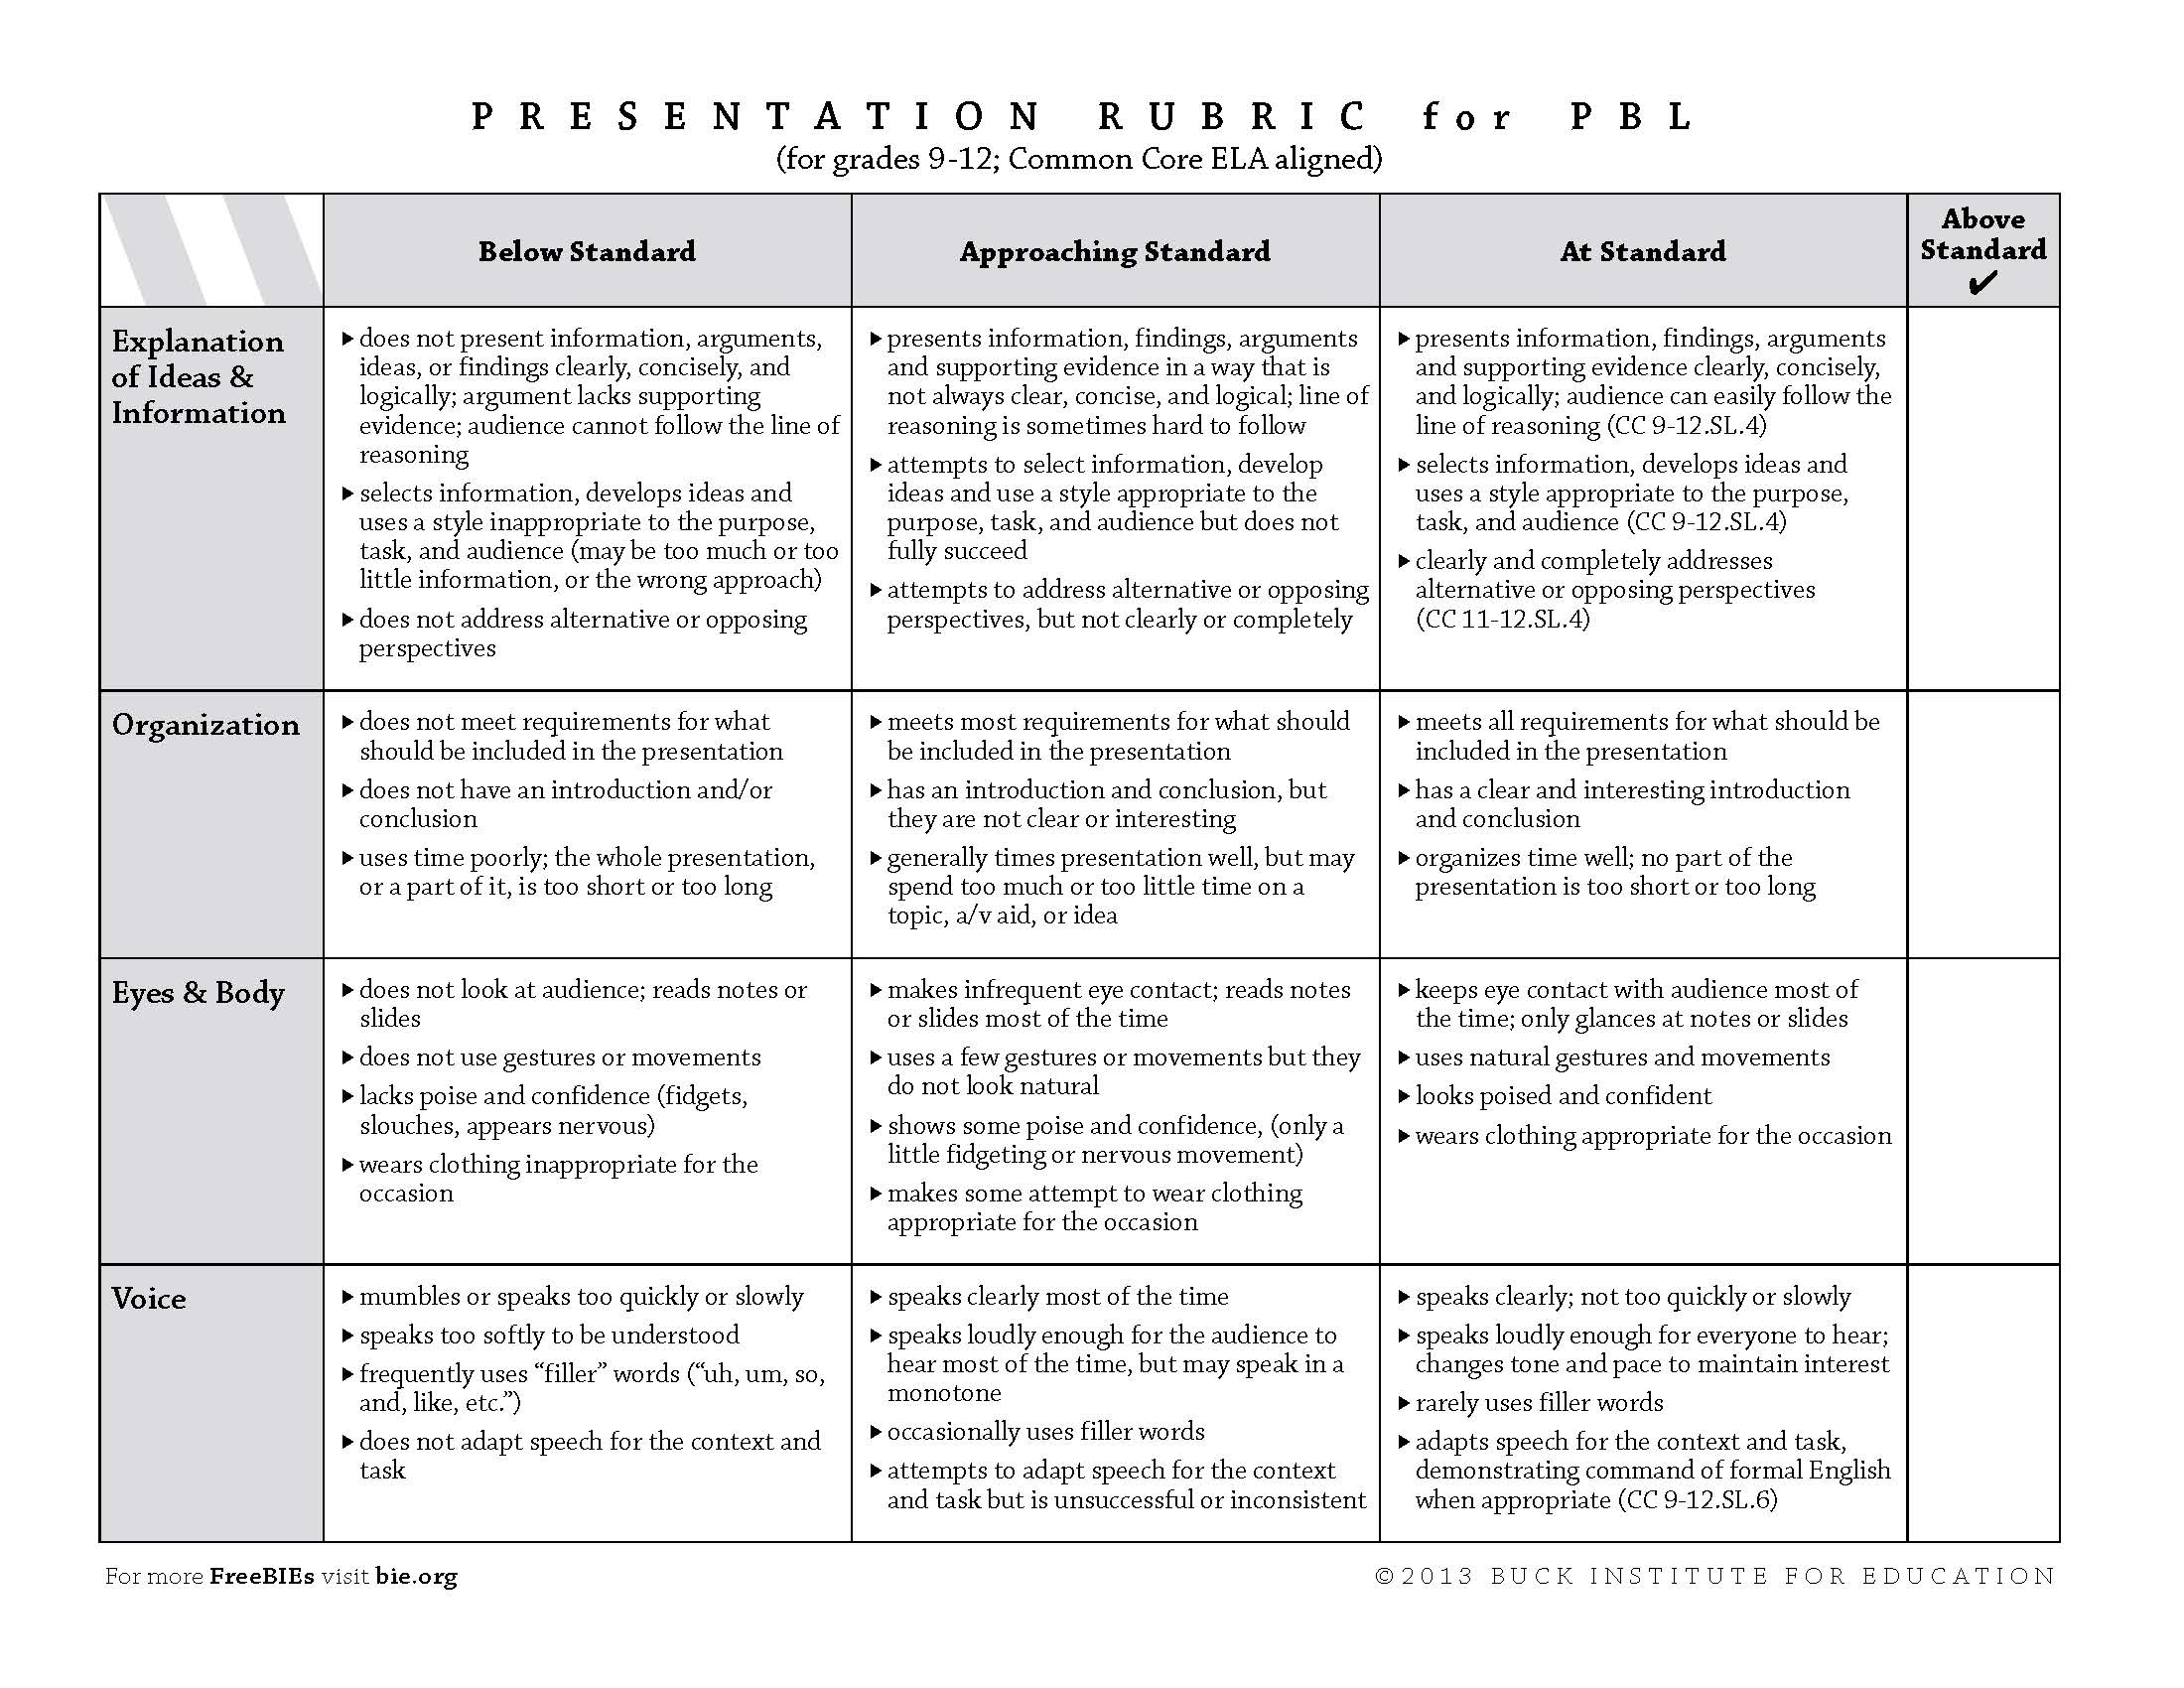 Rubric for evaluating research papers